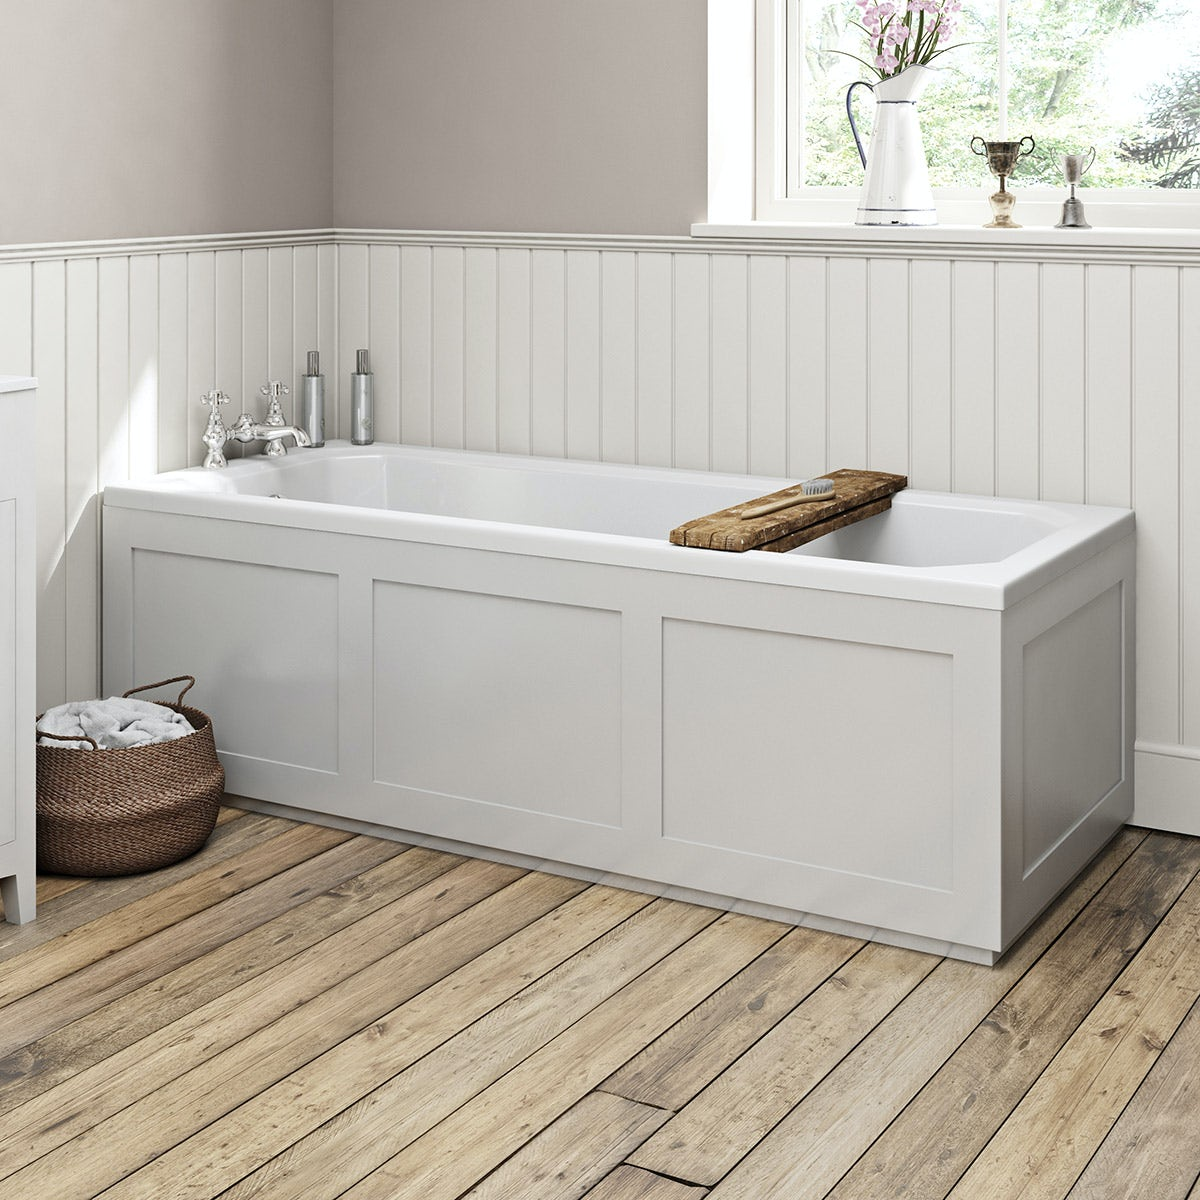 The bath co camberley white wooden straight bath front panel 1700mm Bathroom designs wood paneling